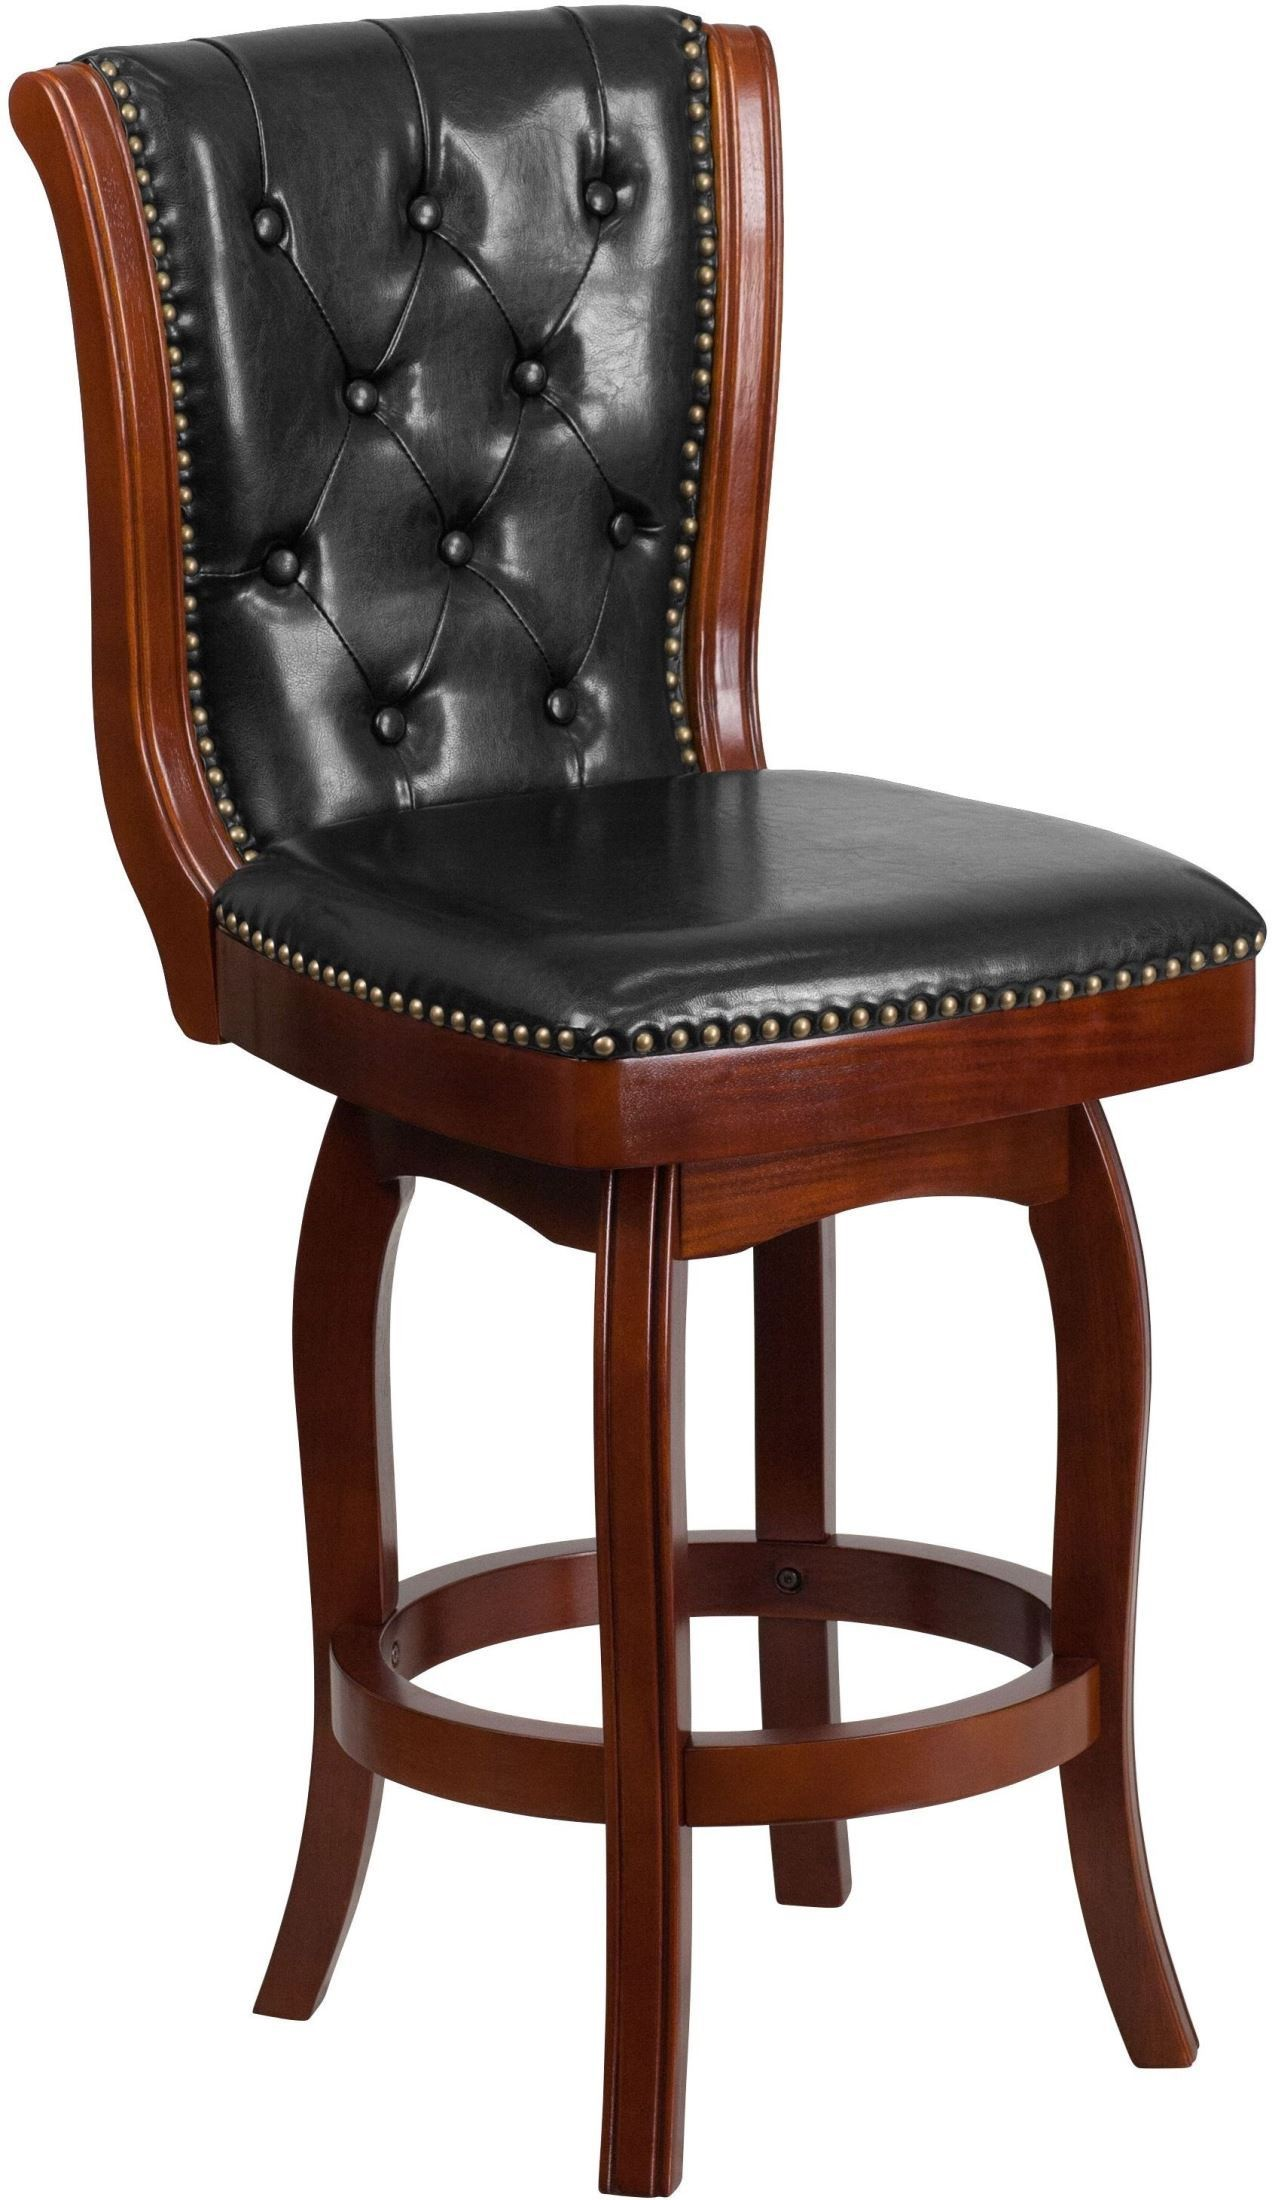 Cherry Chairs 26inch Black Swivel High Cherry Wood Counter Chair Min